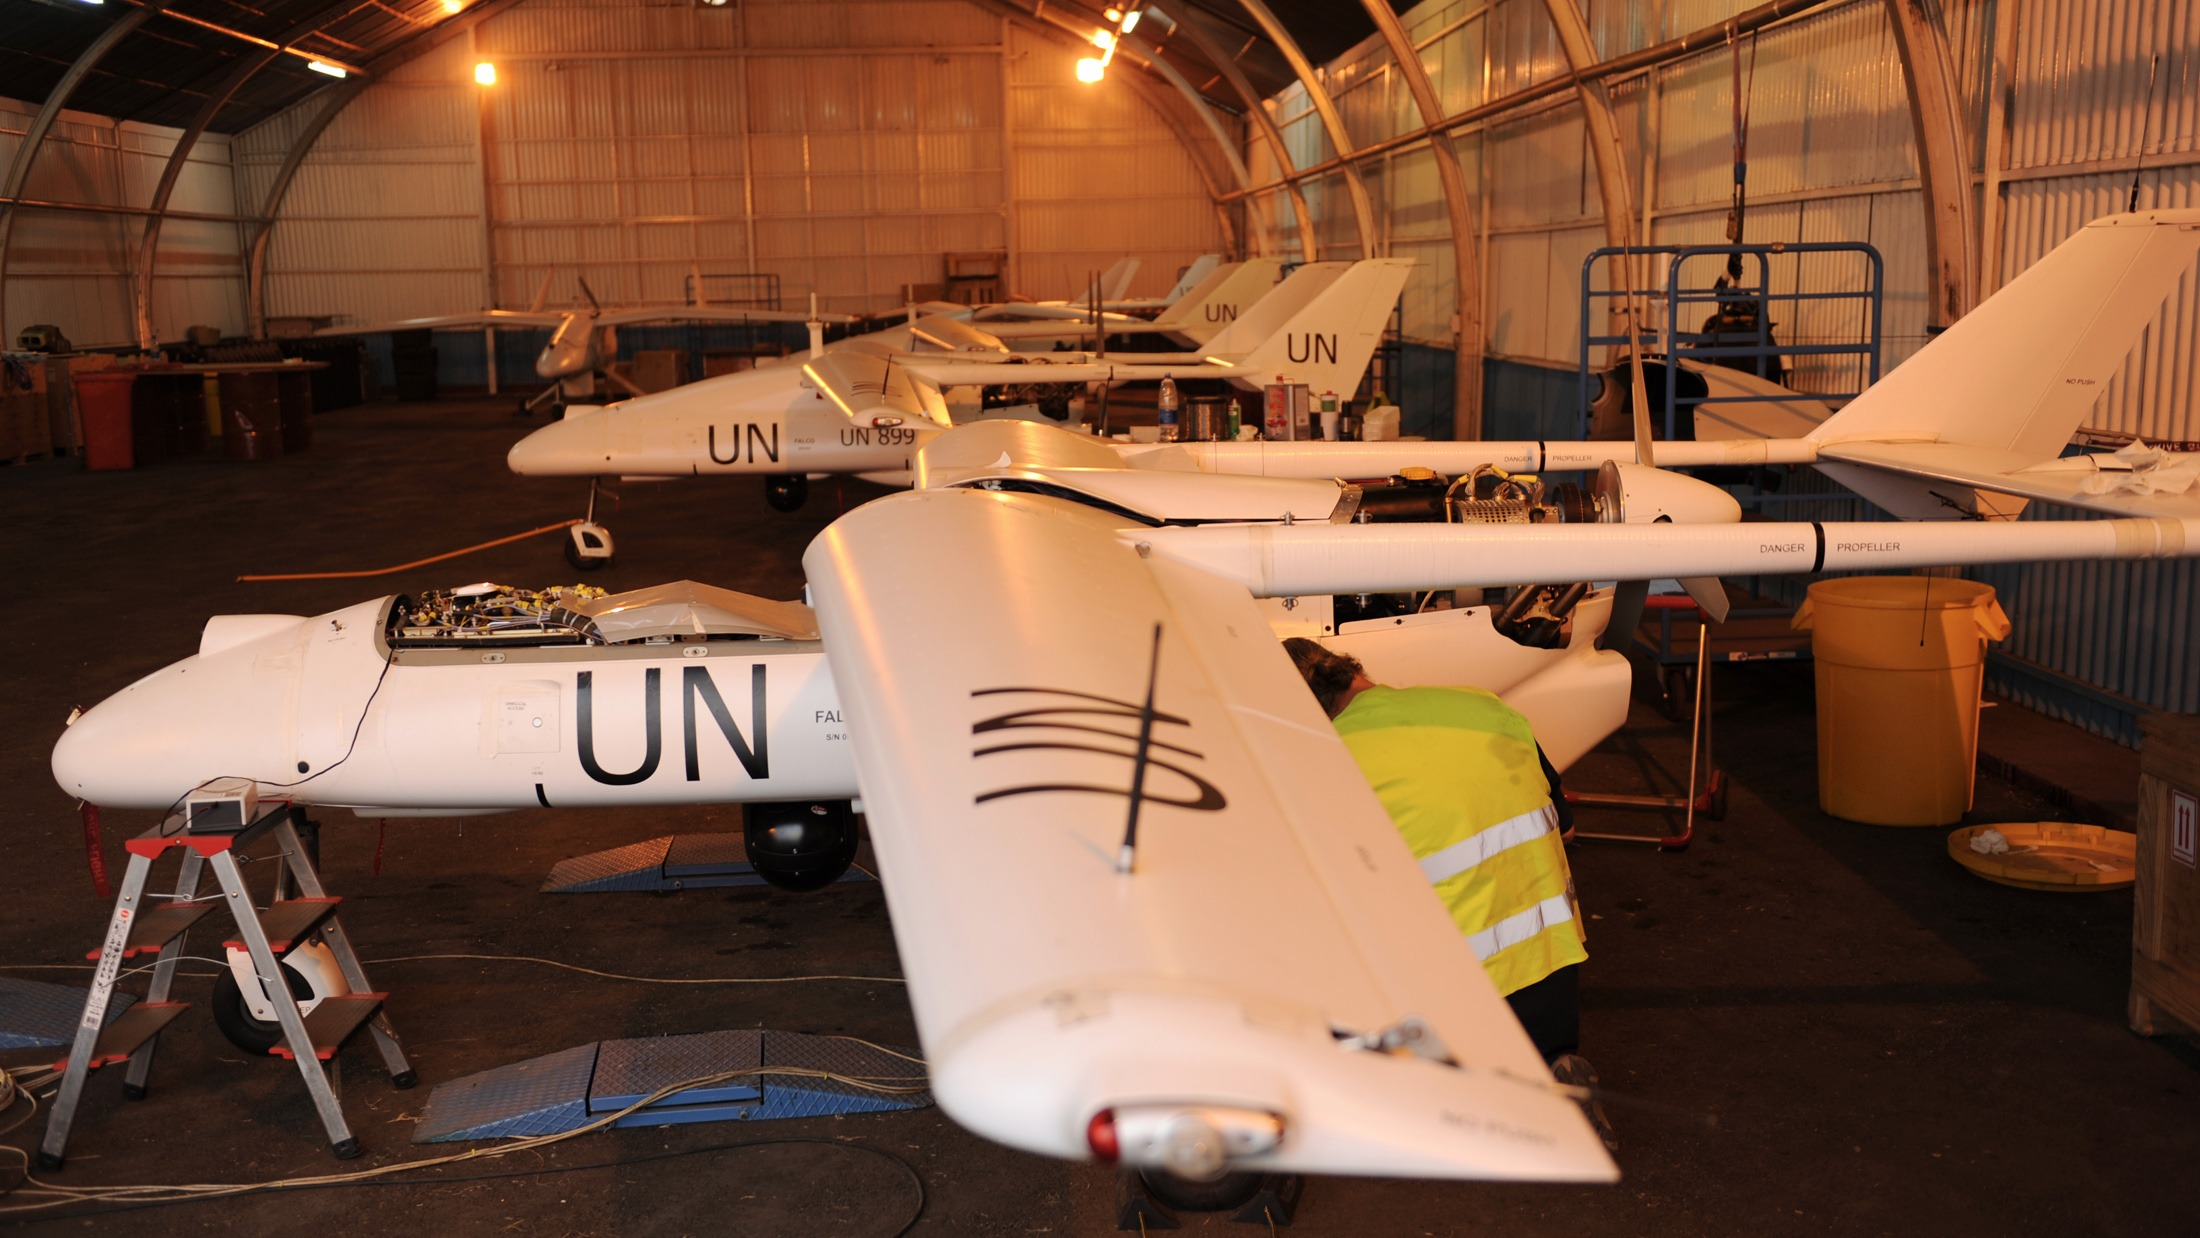 MONUSCO has five drones to support its operation in the DRC